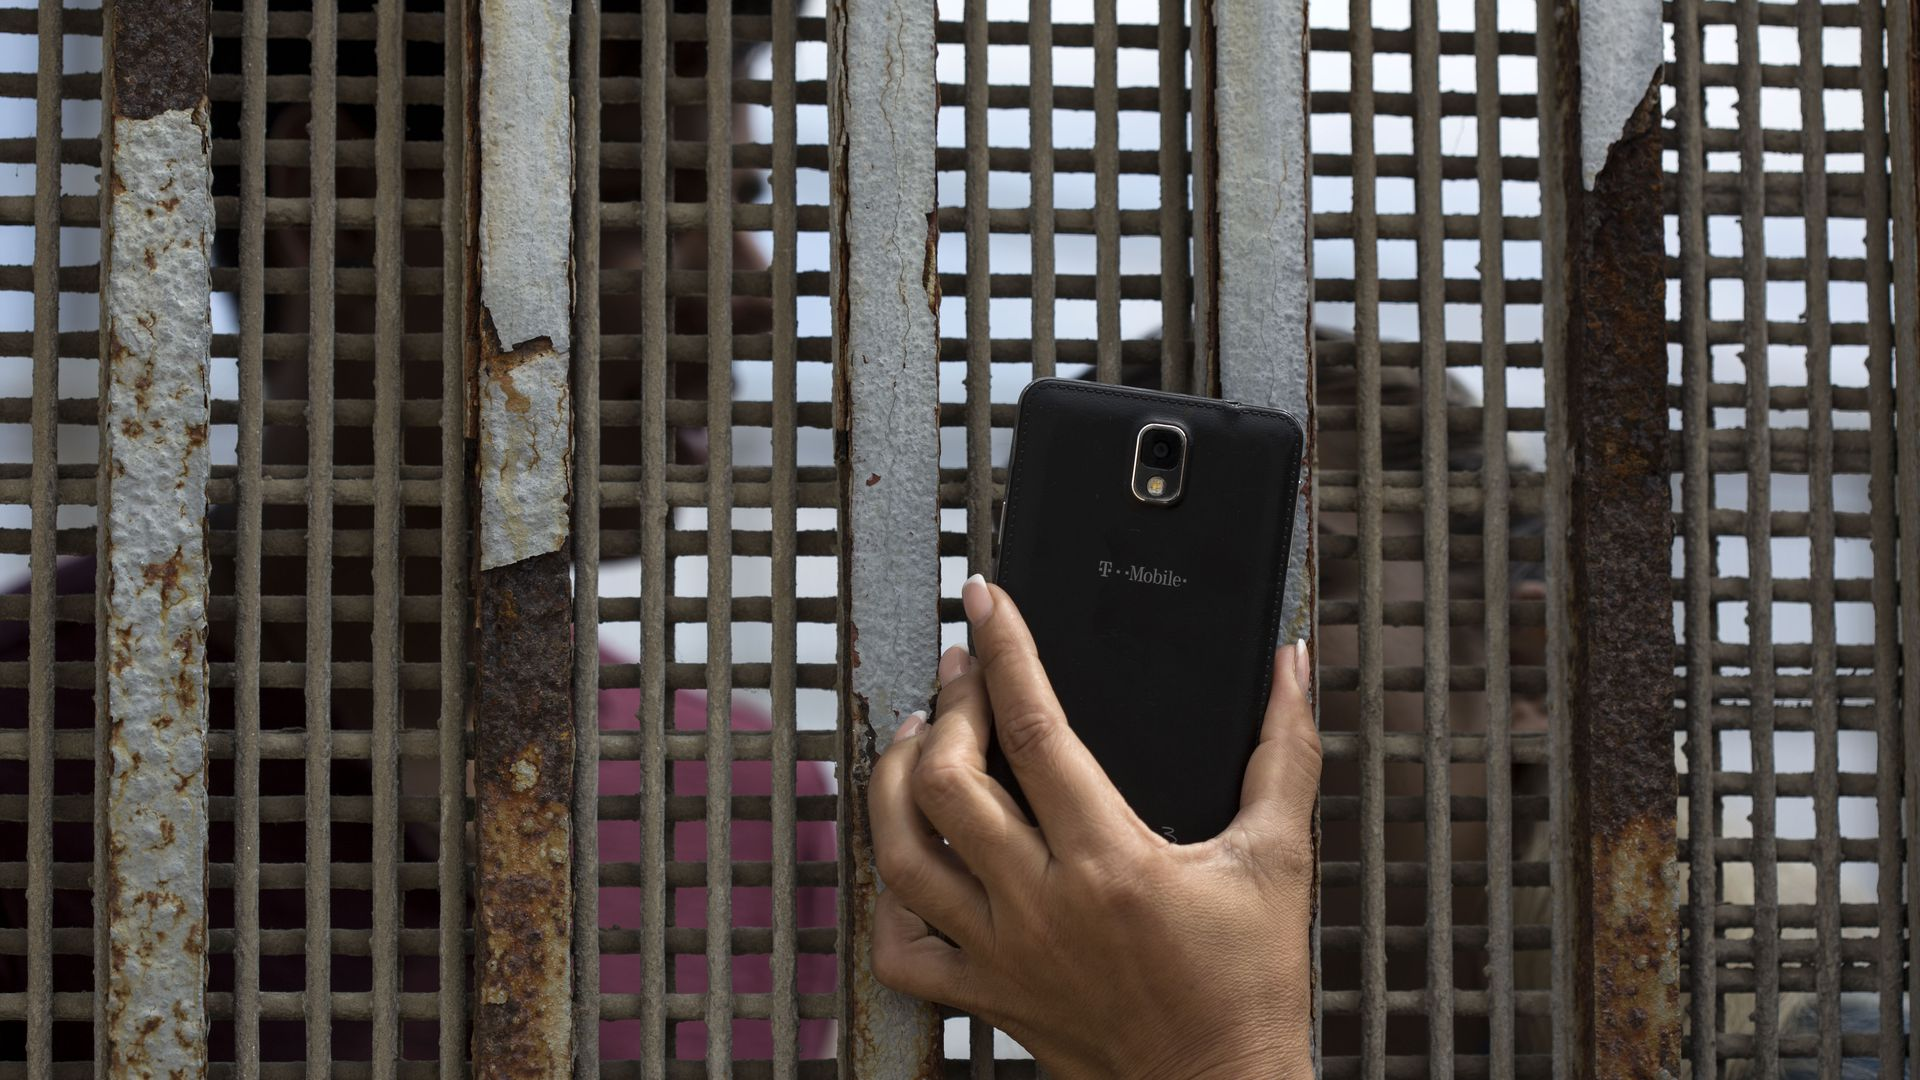 A hand holds a phone up to a grated border wall.